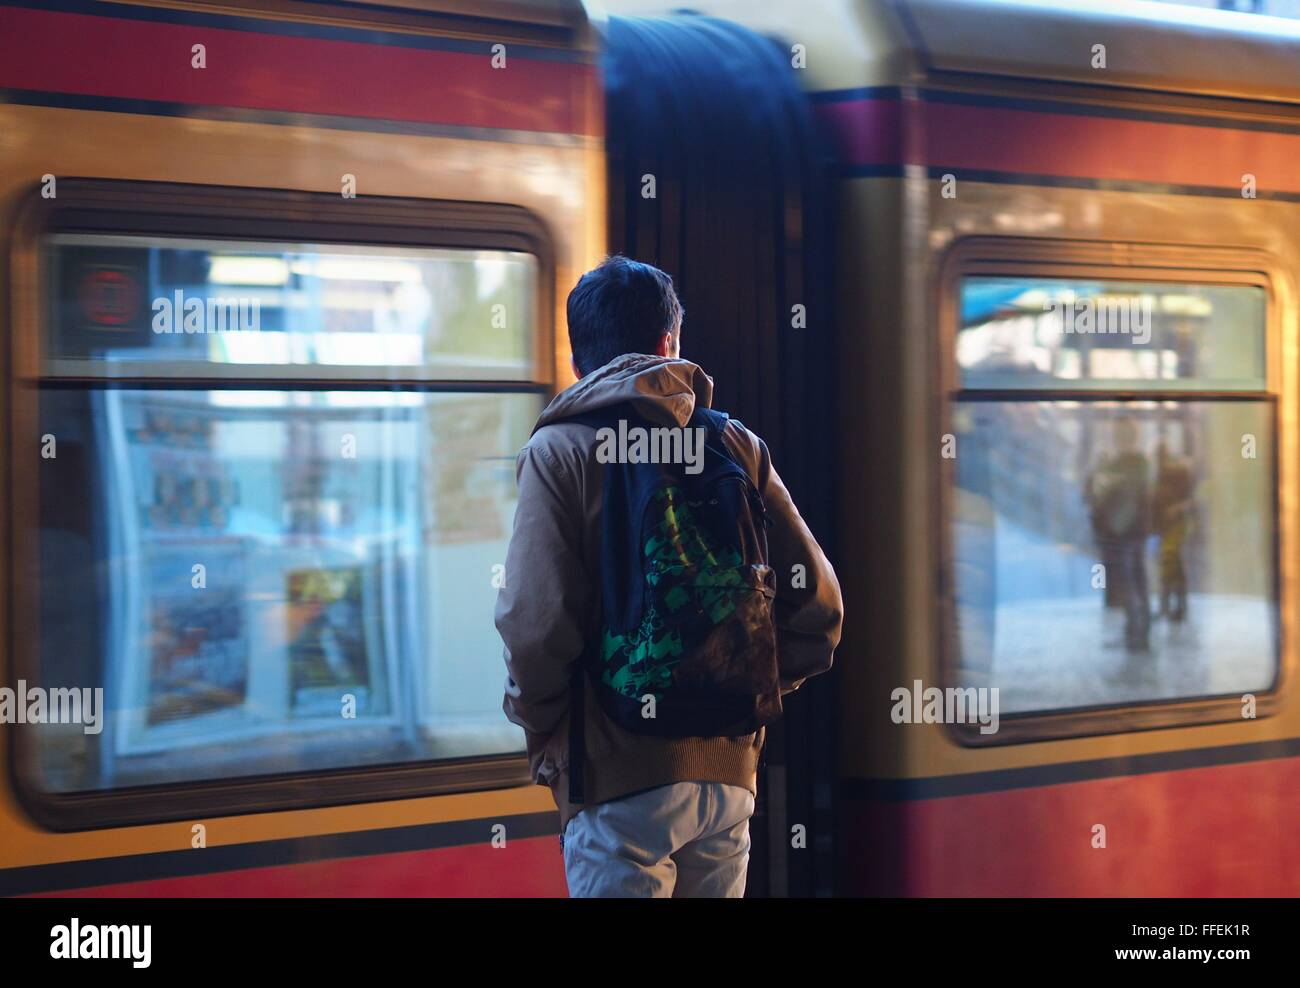 A young migrant is waiting fo the S-Bahn train at a station in Berlin on February 03, 2016. Photo: Wolfram Steinberg/dpa - Stock Image